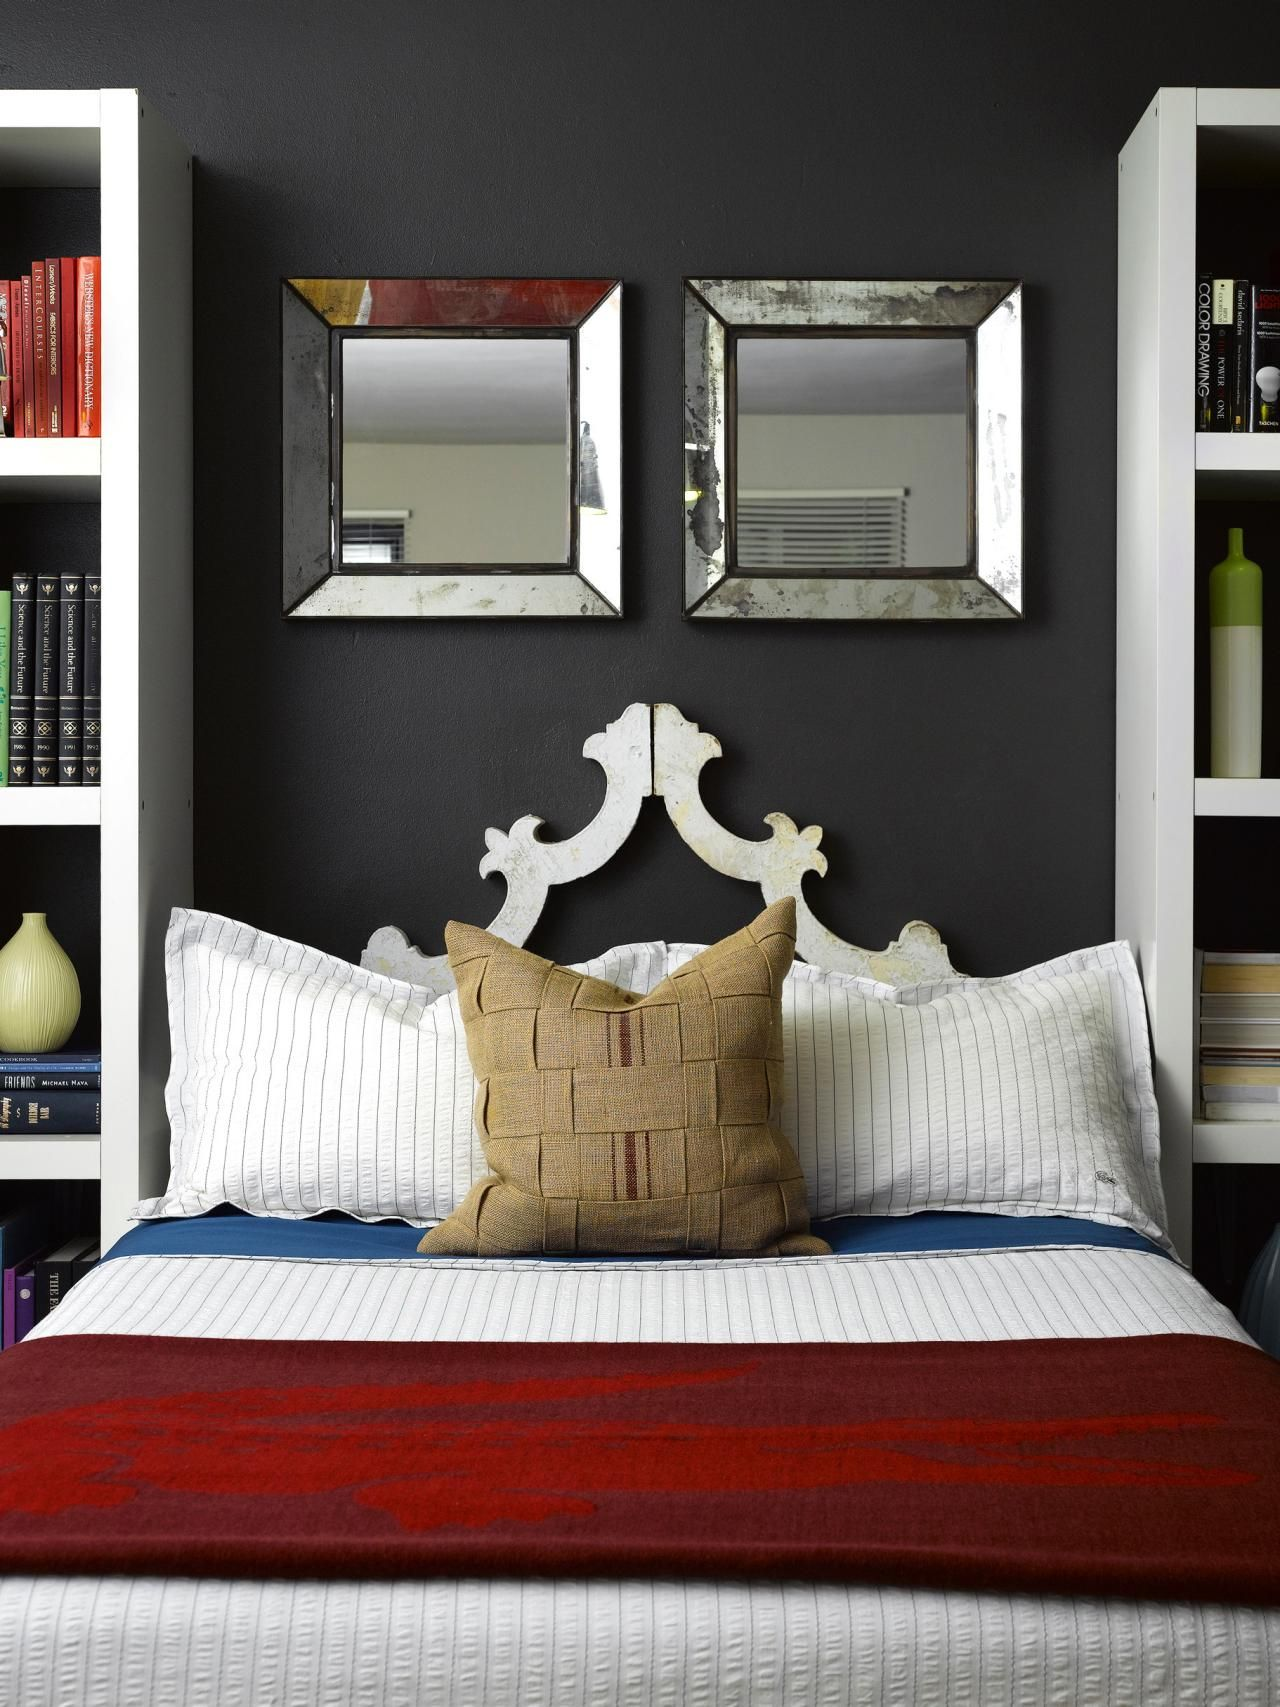 decorating with mirrors - Bedroom Decorative Accessories